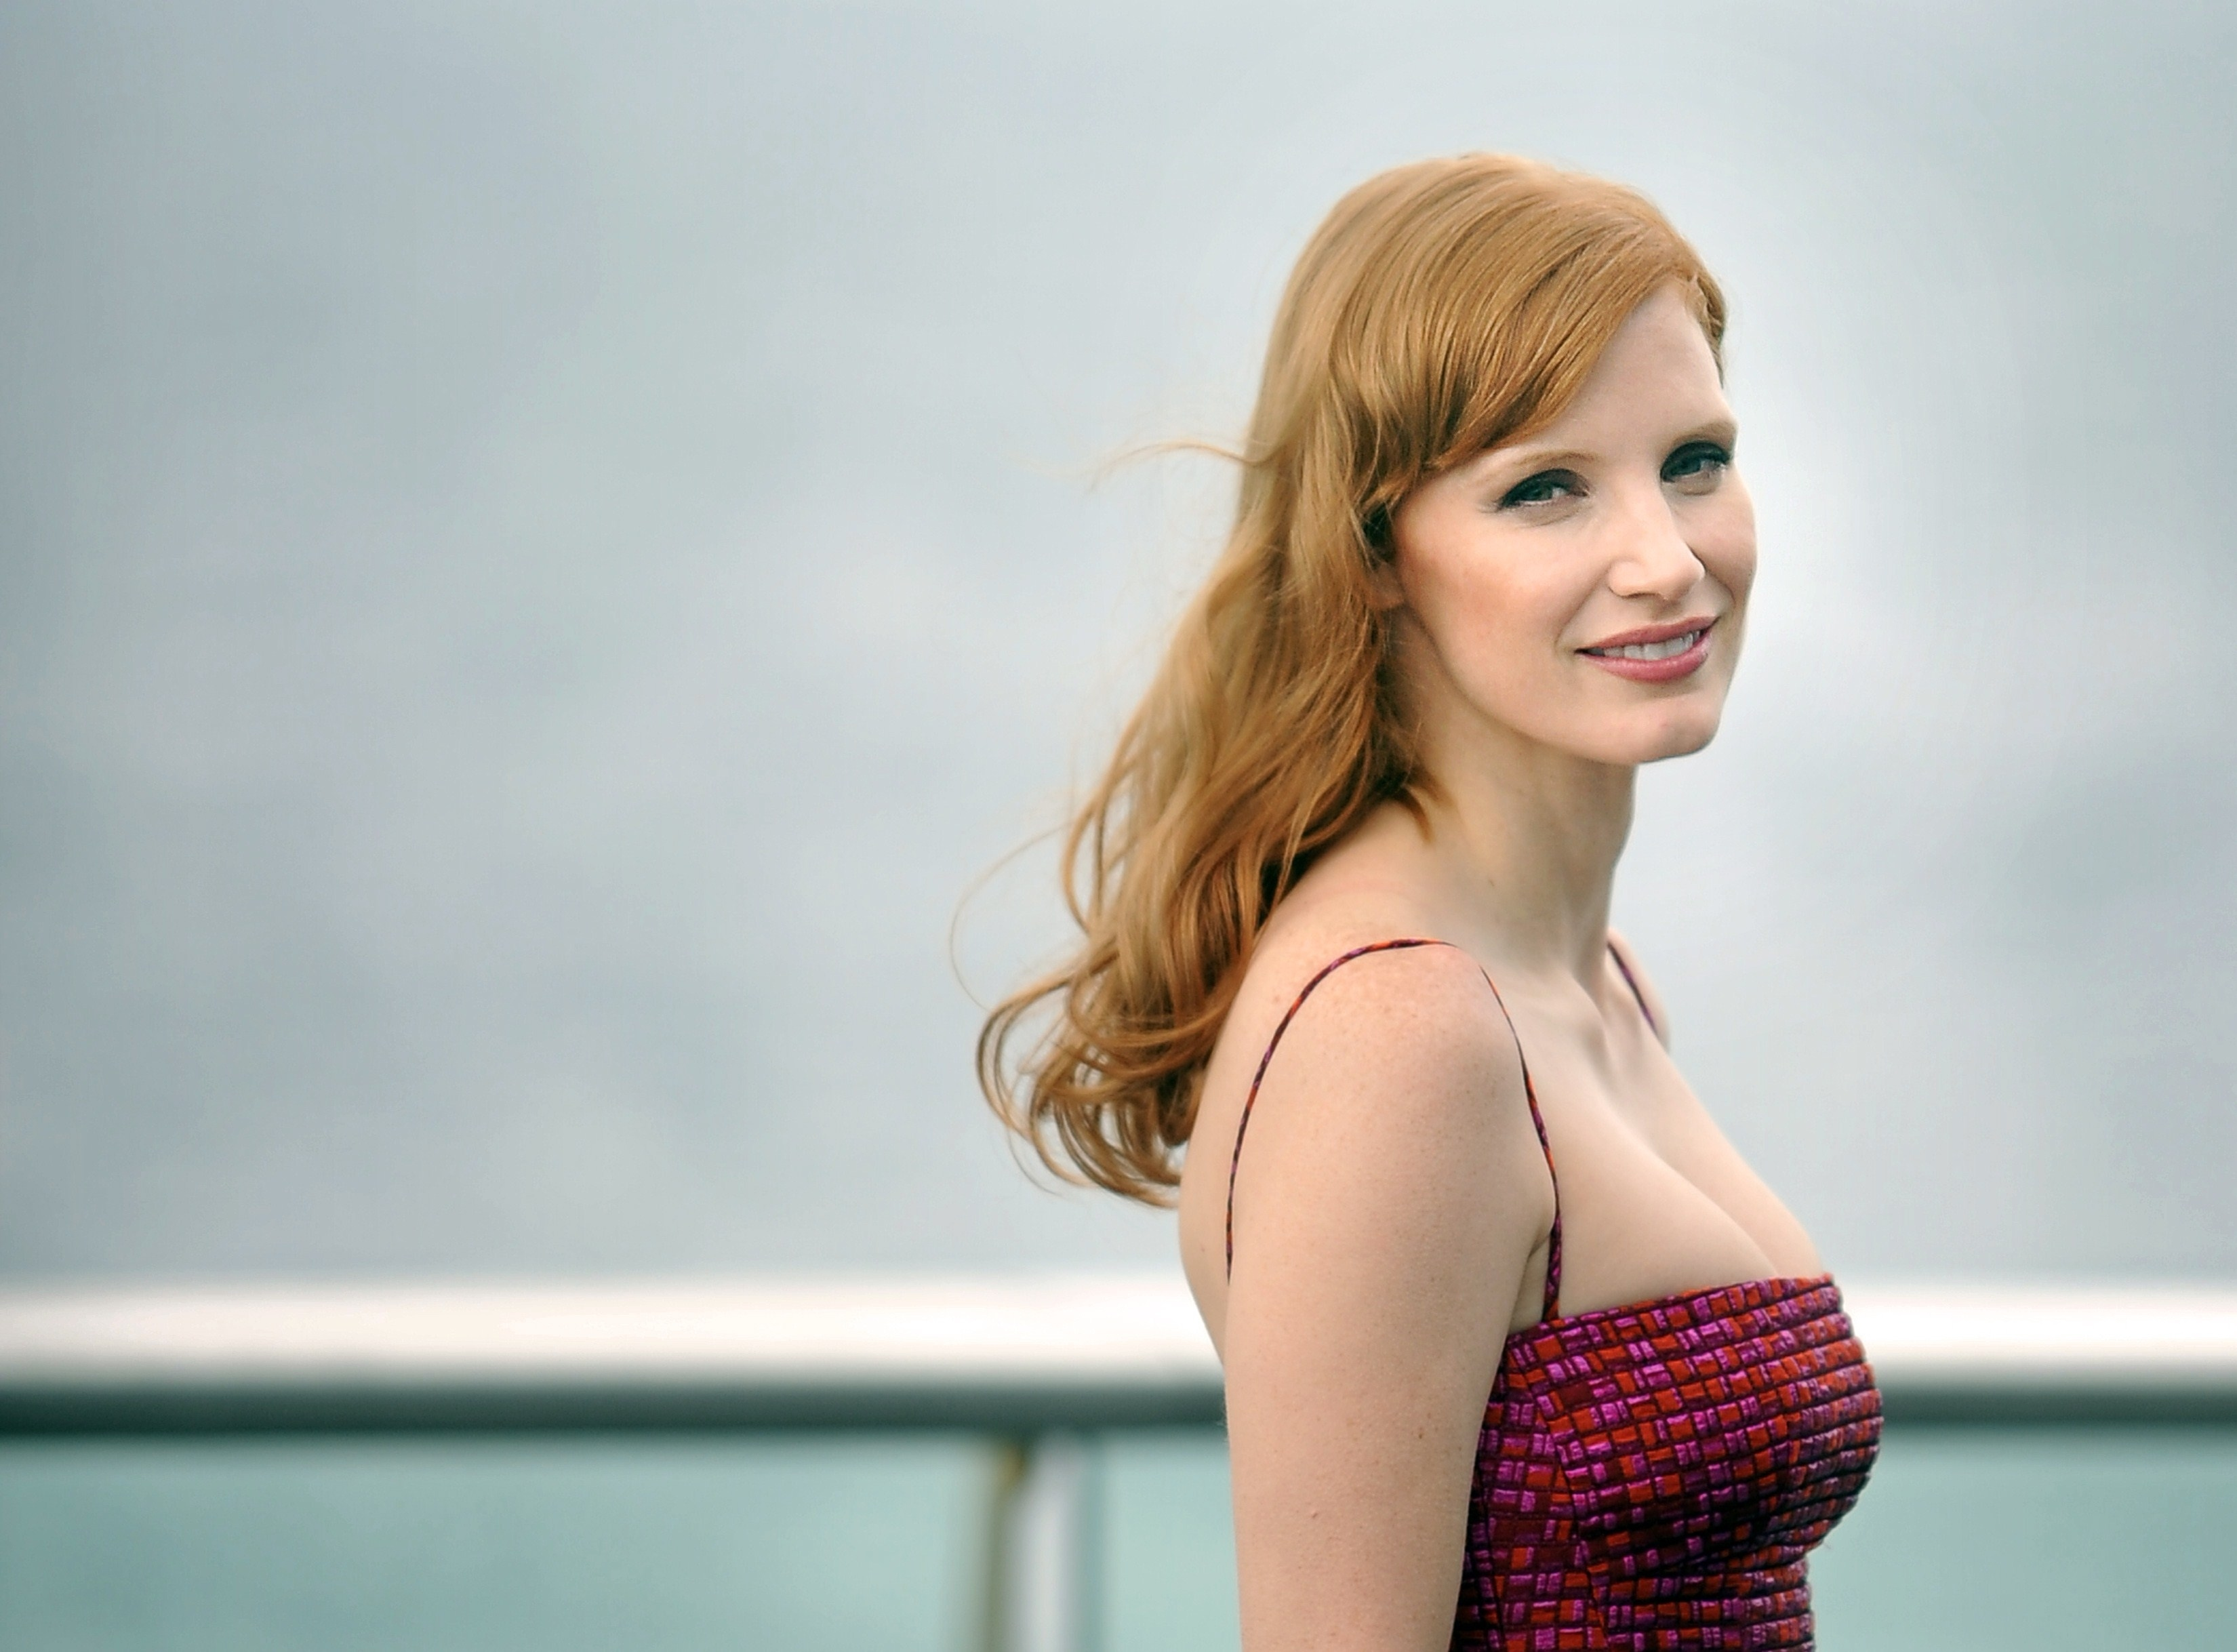 jessica chastain fan